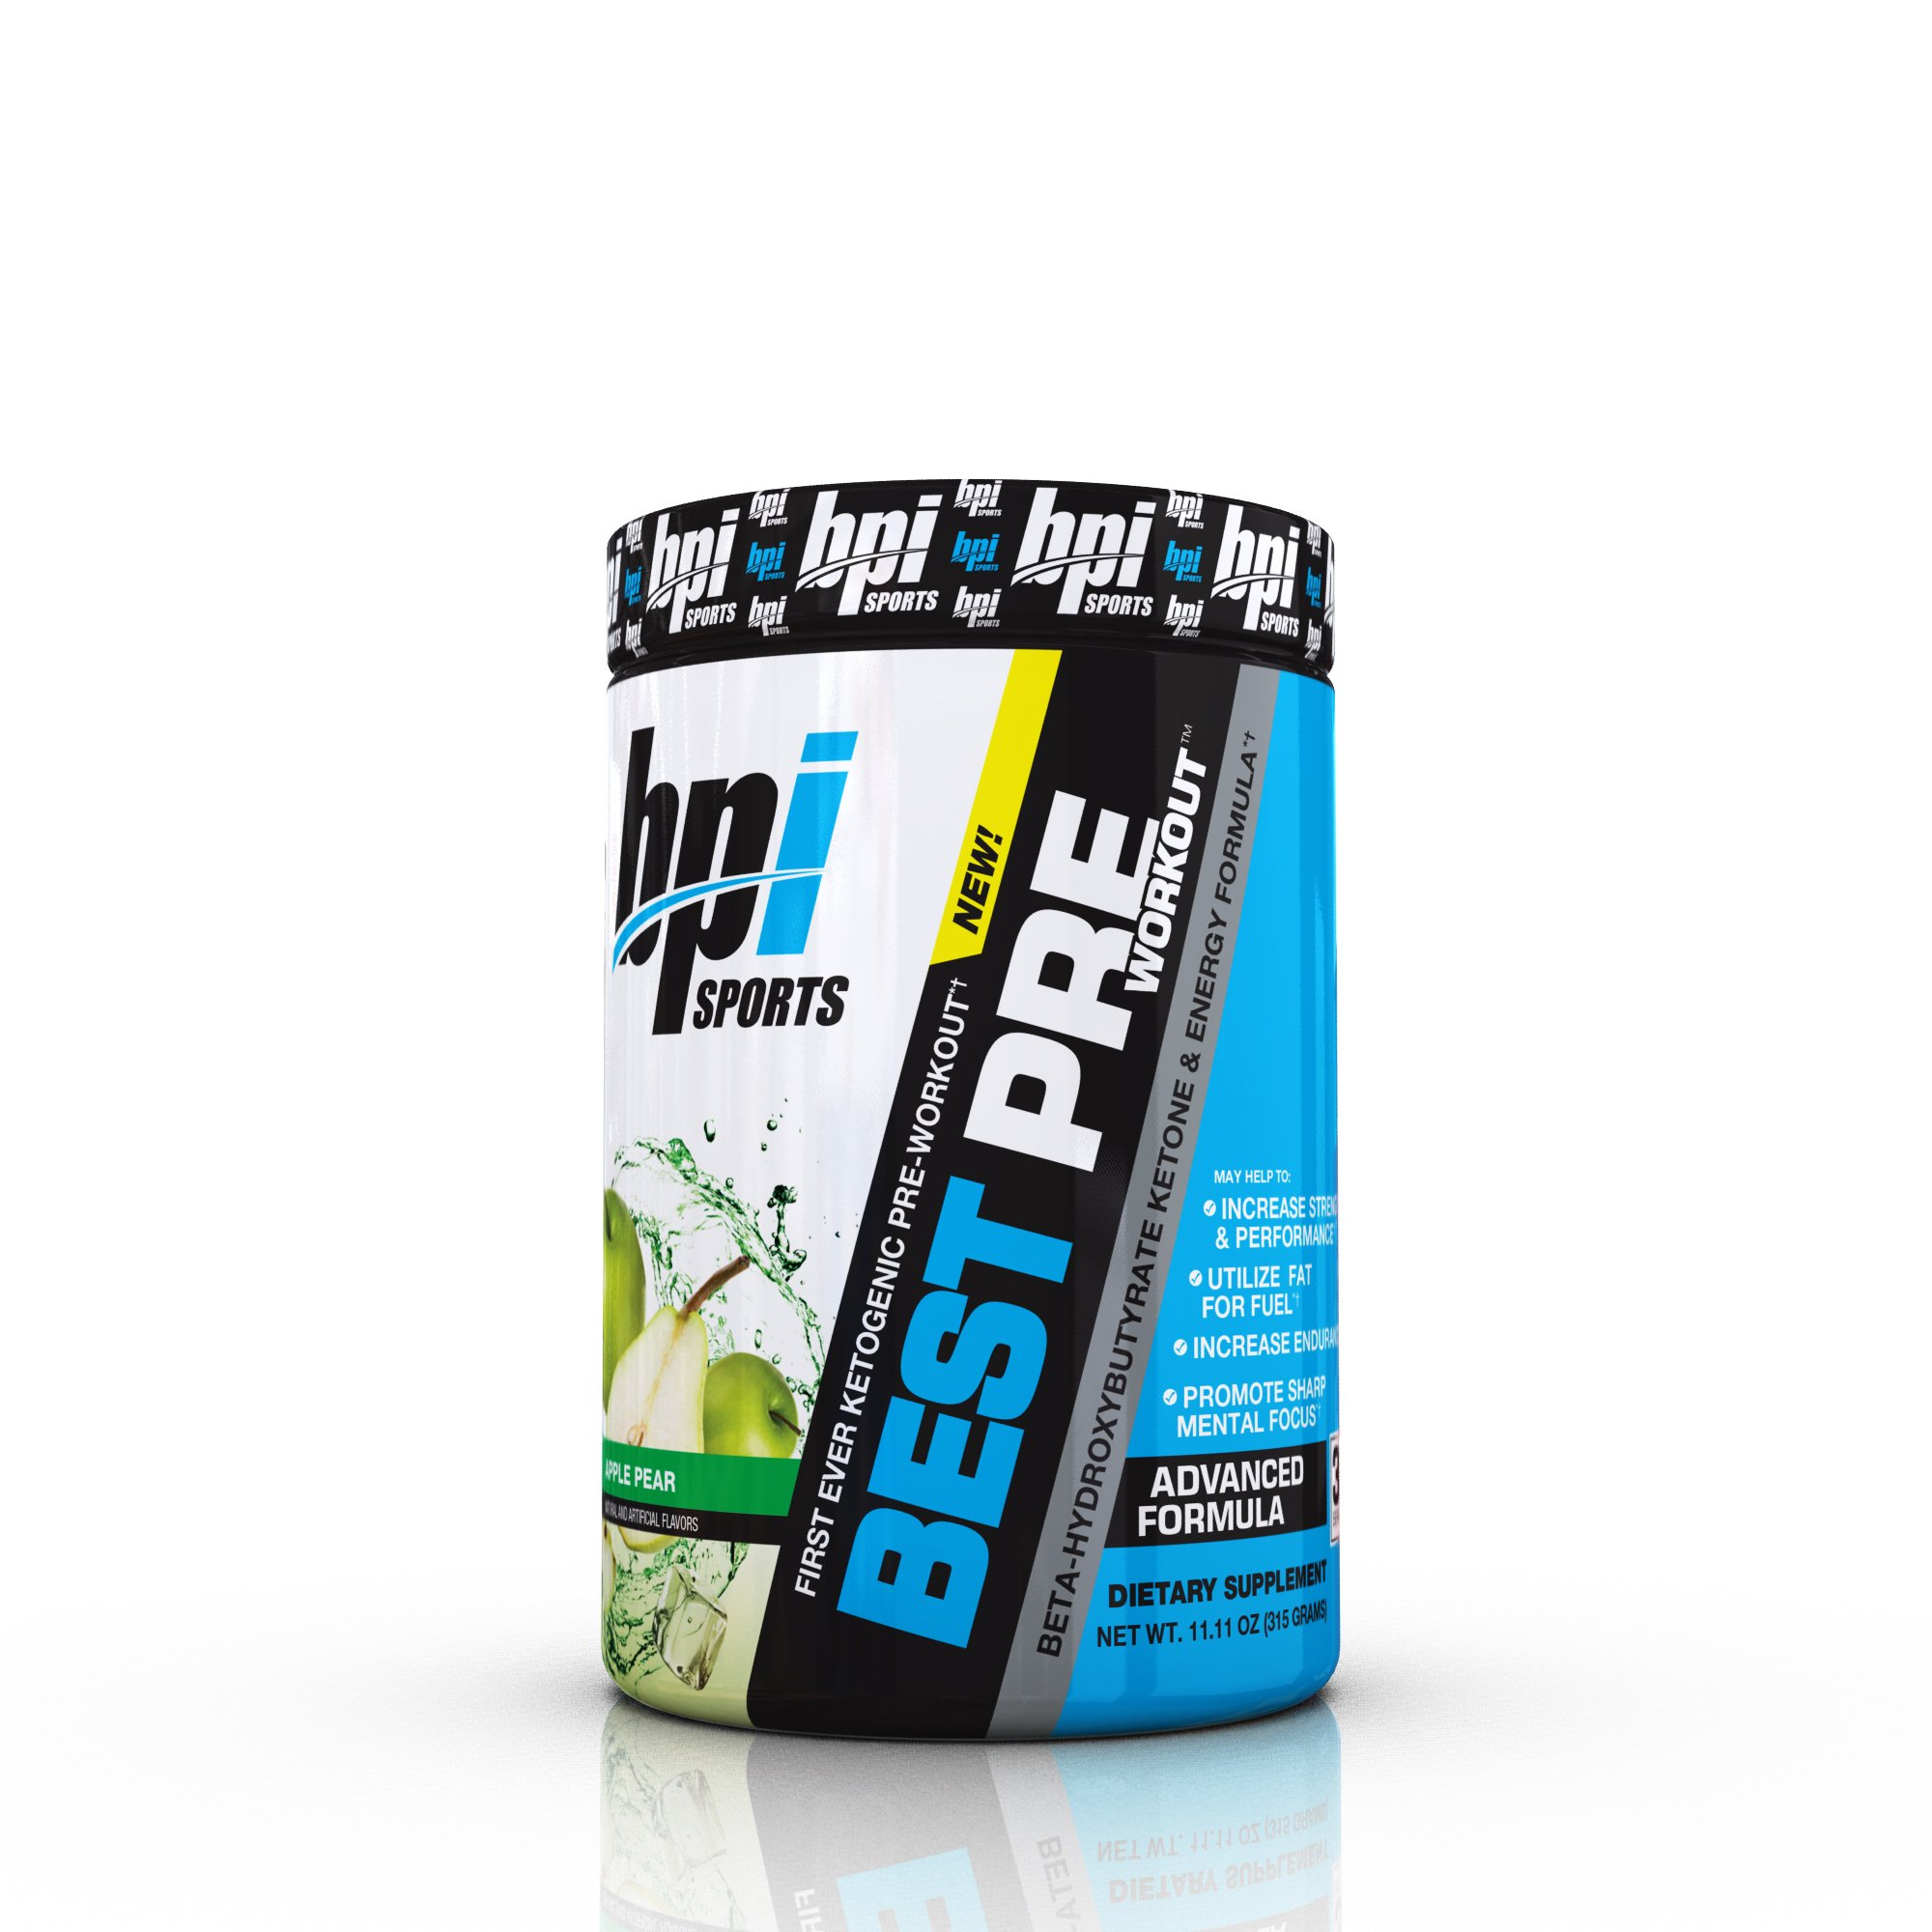 BPI Sports First Ever Ketogenic Pre-Workout Supplement, Apple Pear, 11.11 Ounce